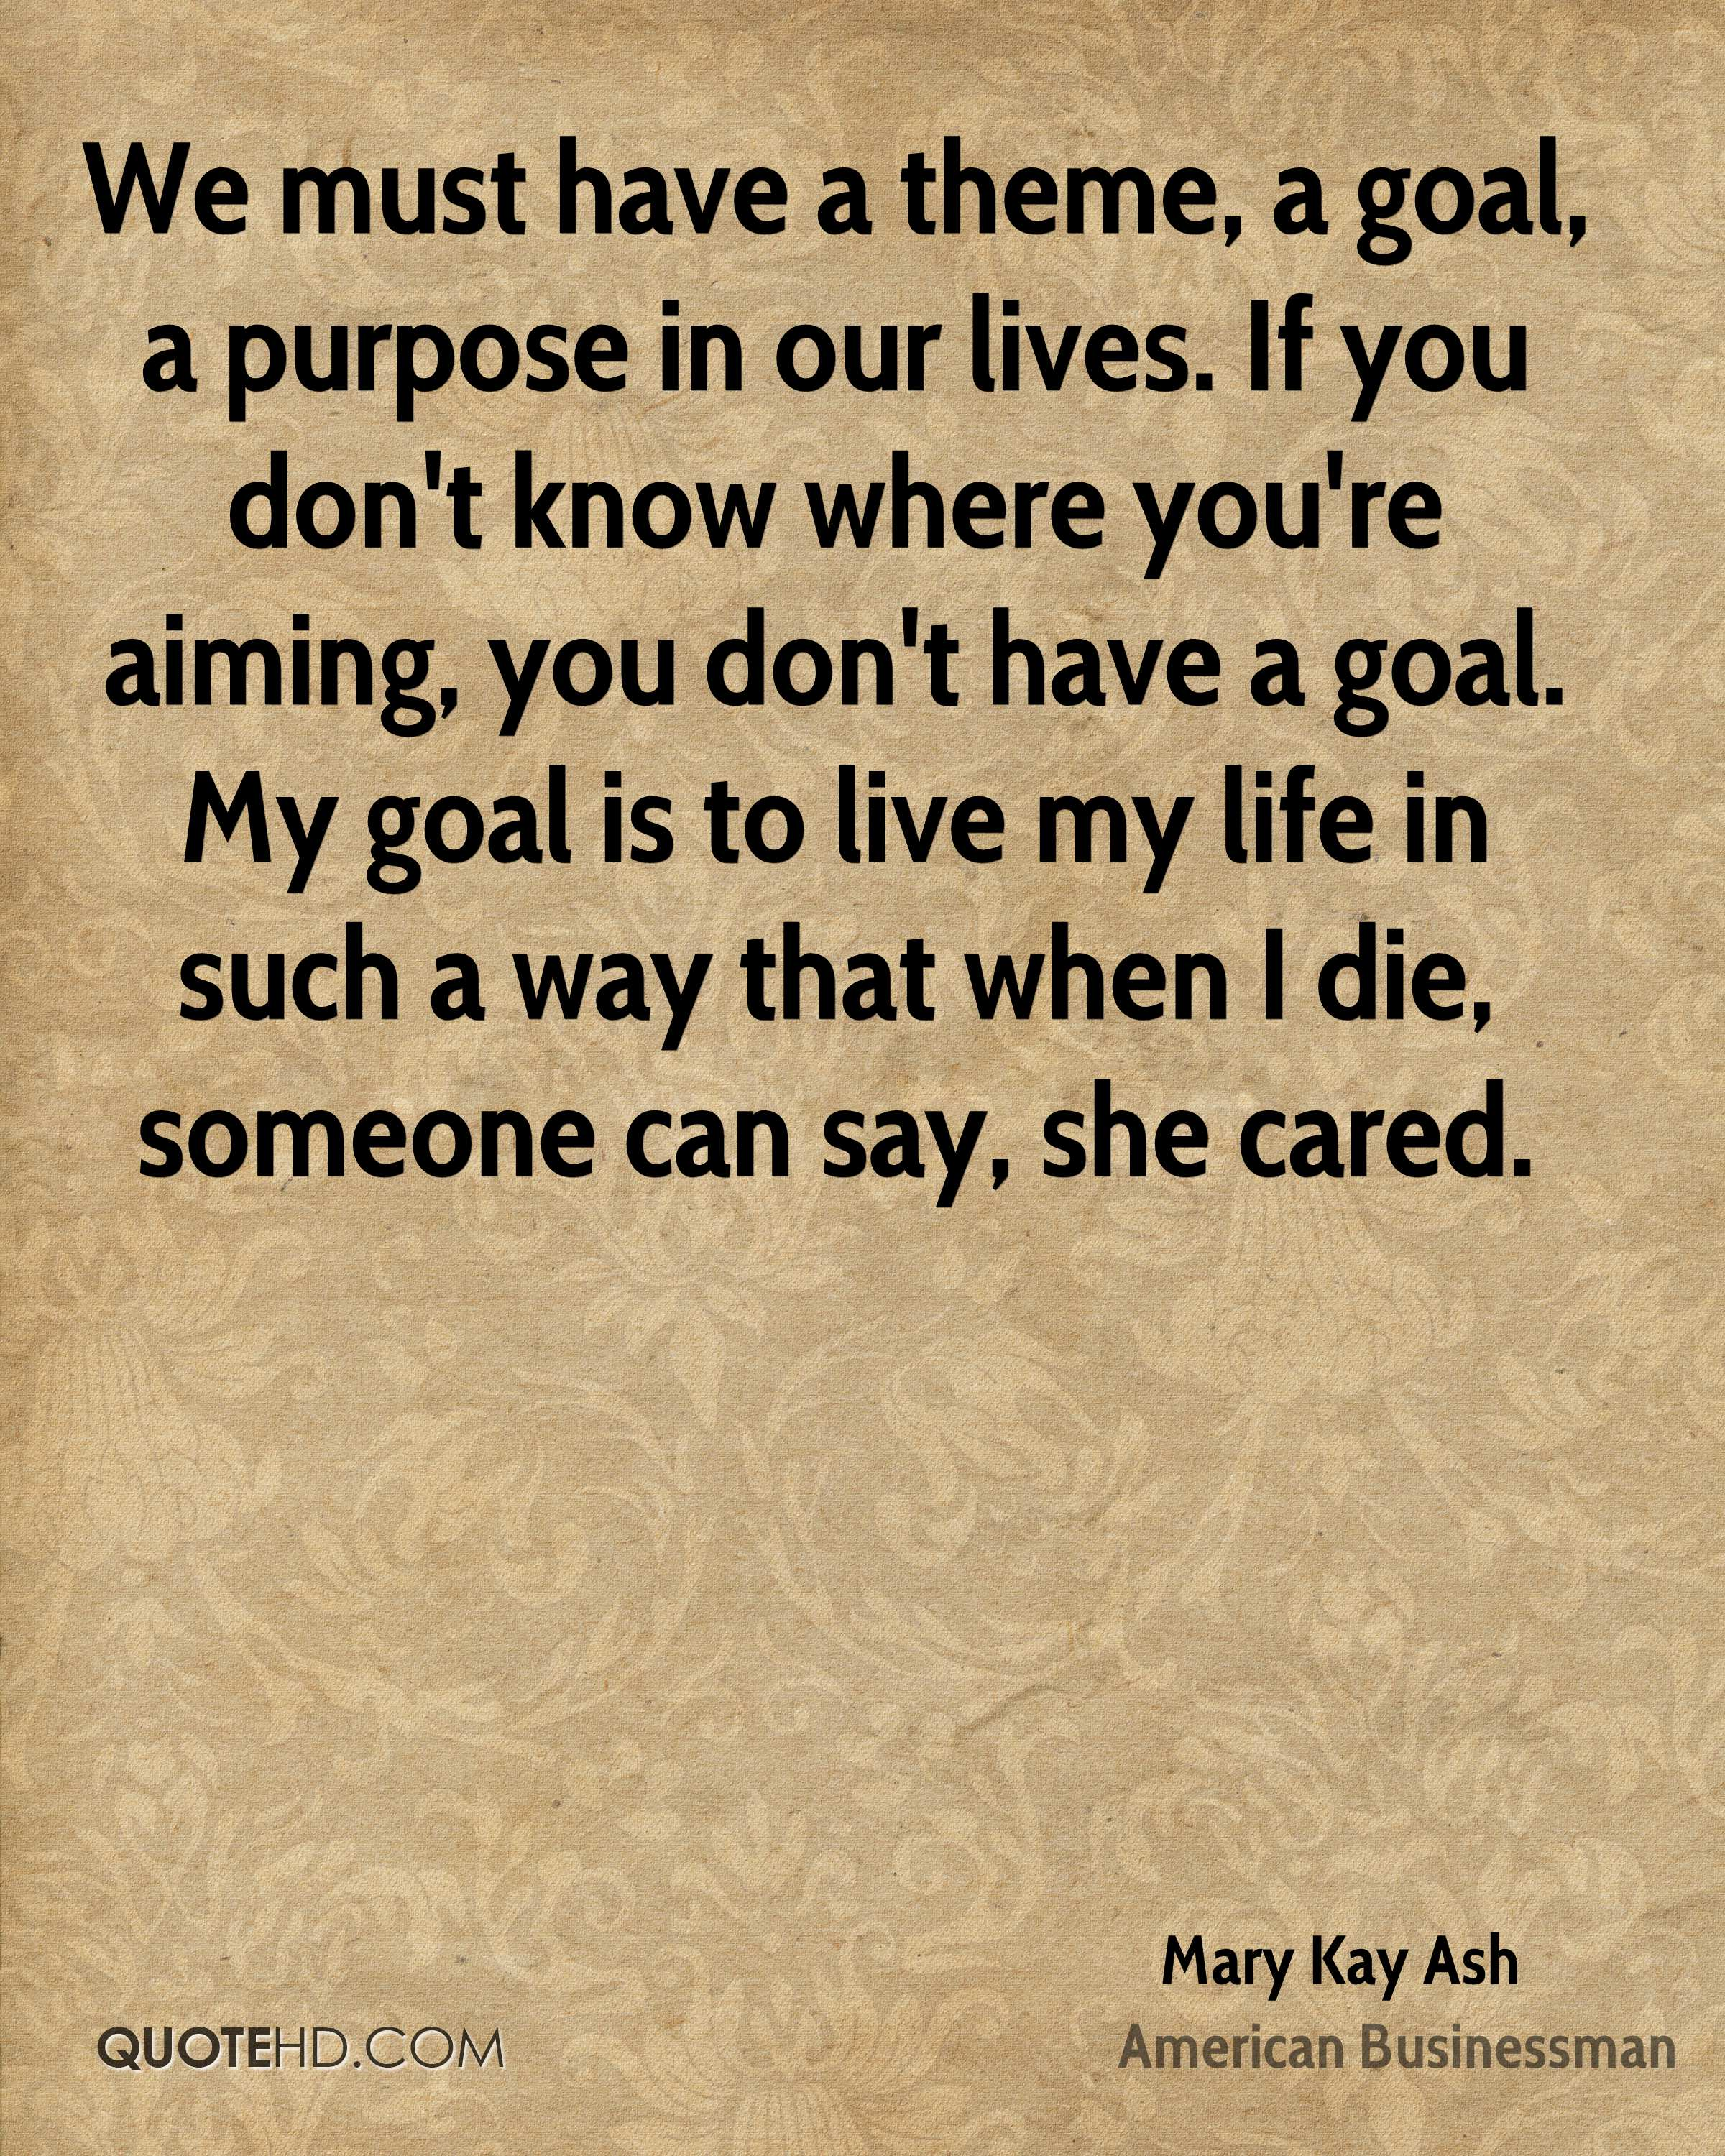 My Purpose In Life Quotes Mary Kay Ash Life Quotes  Quotehd